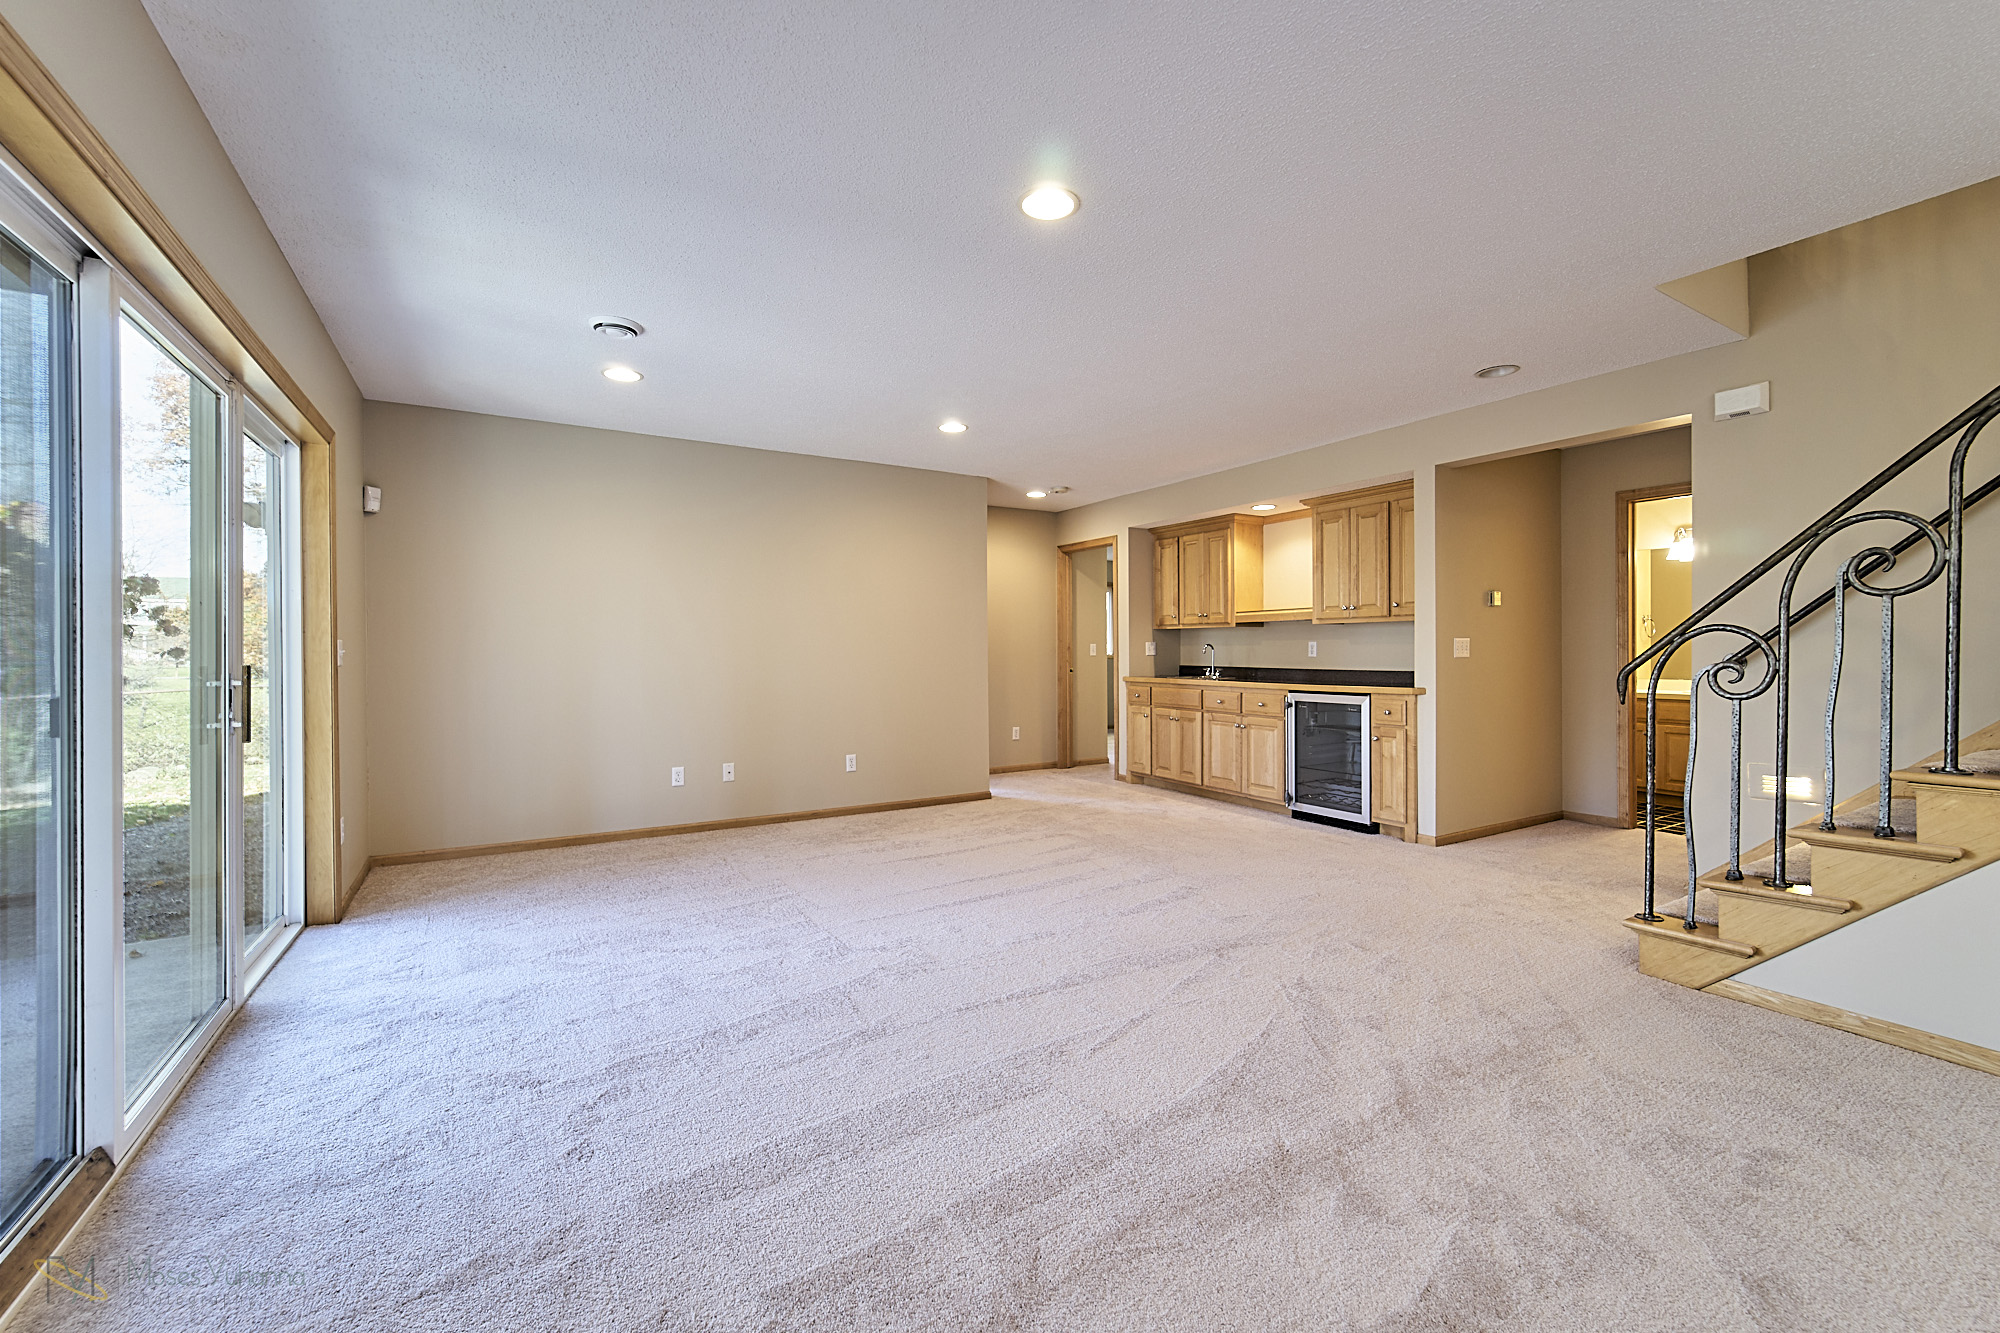 13770-Cottonwood-St-NW-Andover 16 FR.jpg